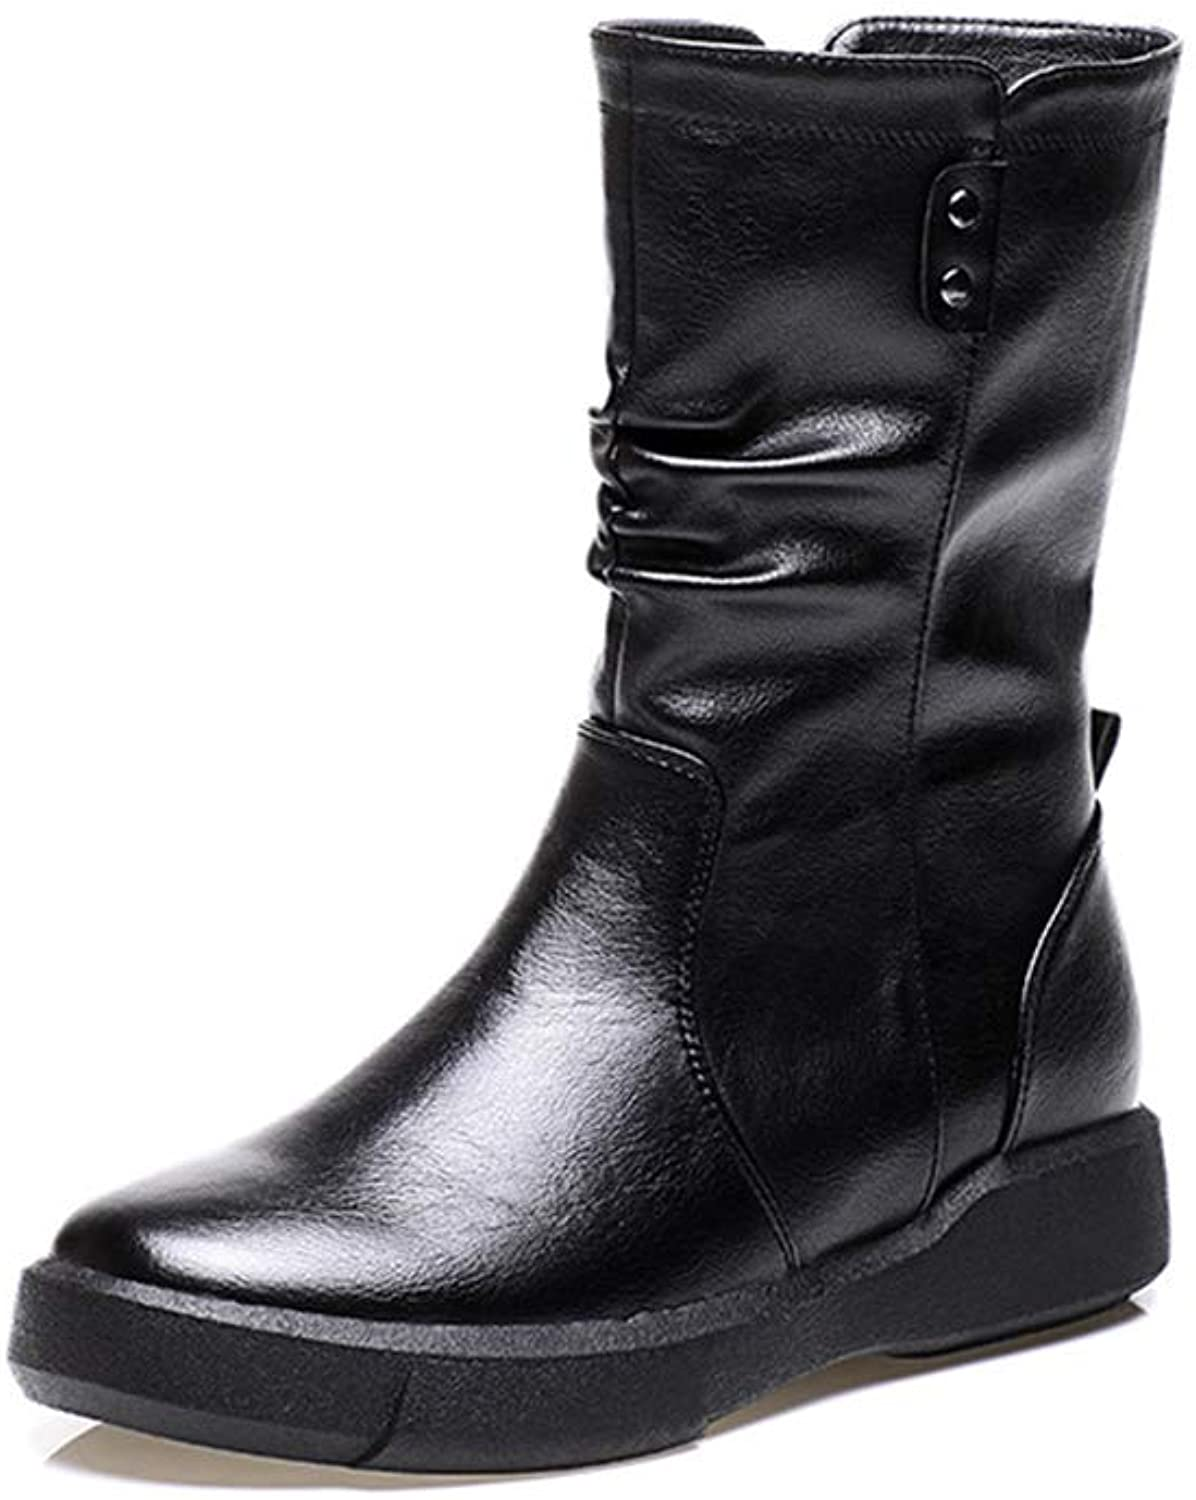 F1rst Rate Women's Retro Fashion Boots Mertin Boot Autumn Winter